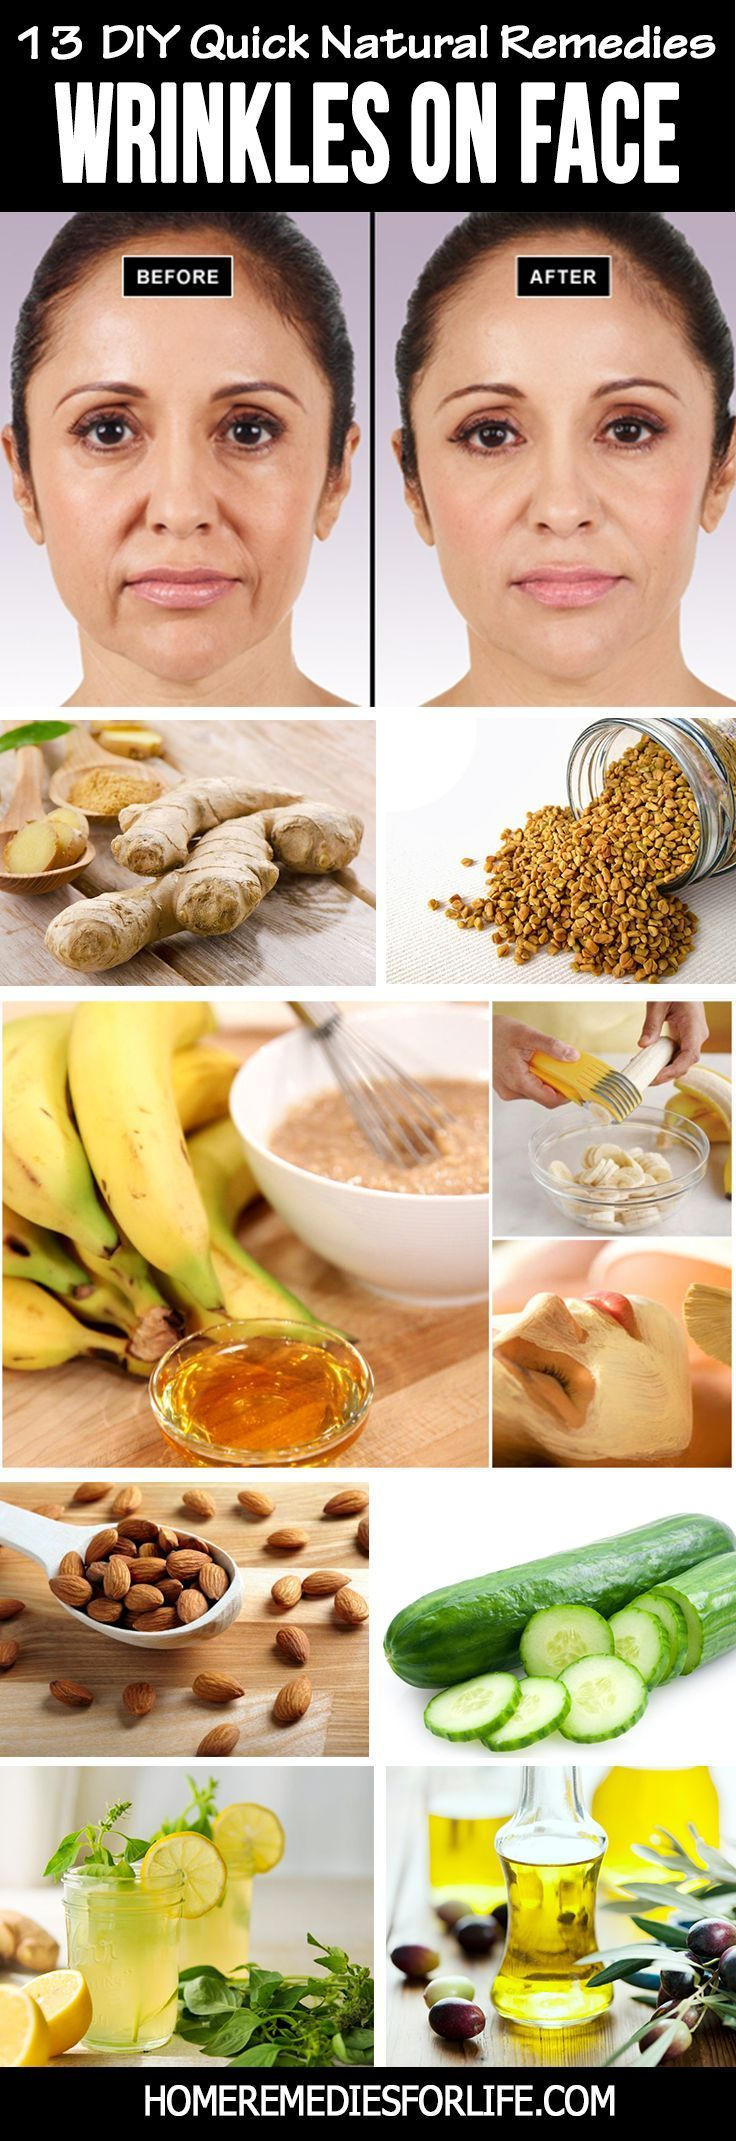 22 DIY Home Remedies 22 DIY Home Remedies for Wrinkles Make the switch to Iaso today for a healthier…  https://www.pinterest.com/pin/177821885266829543/